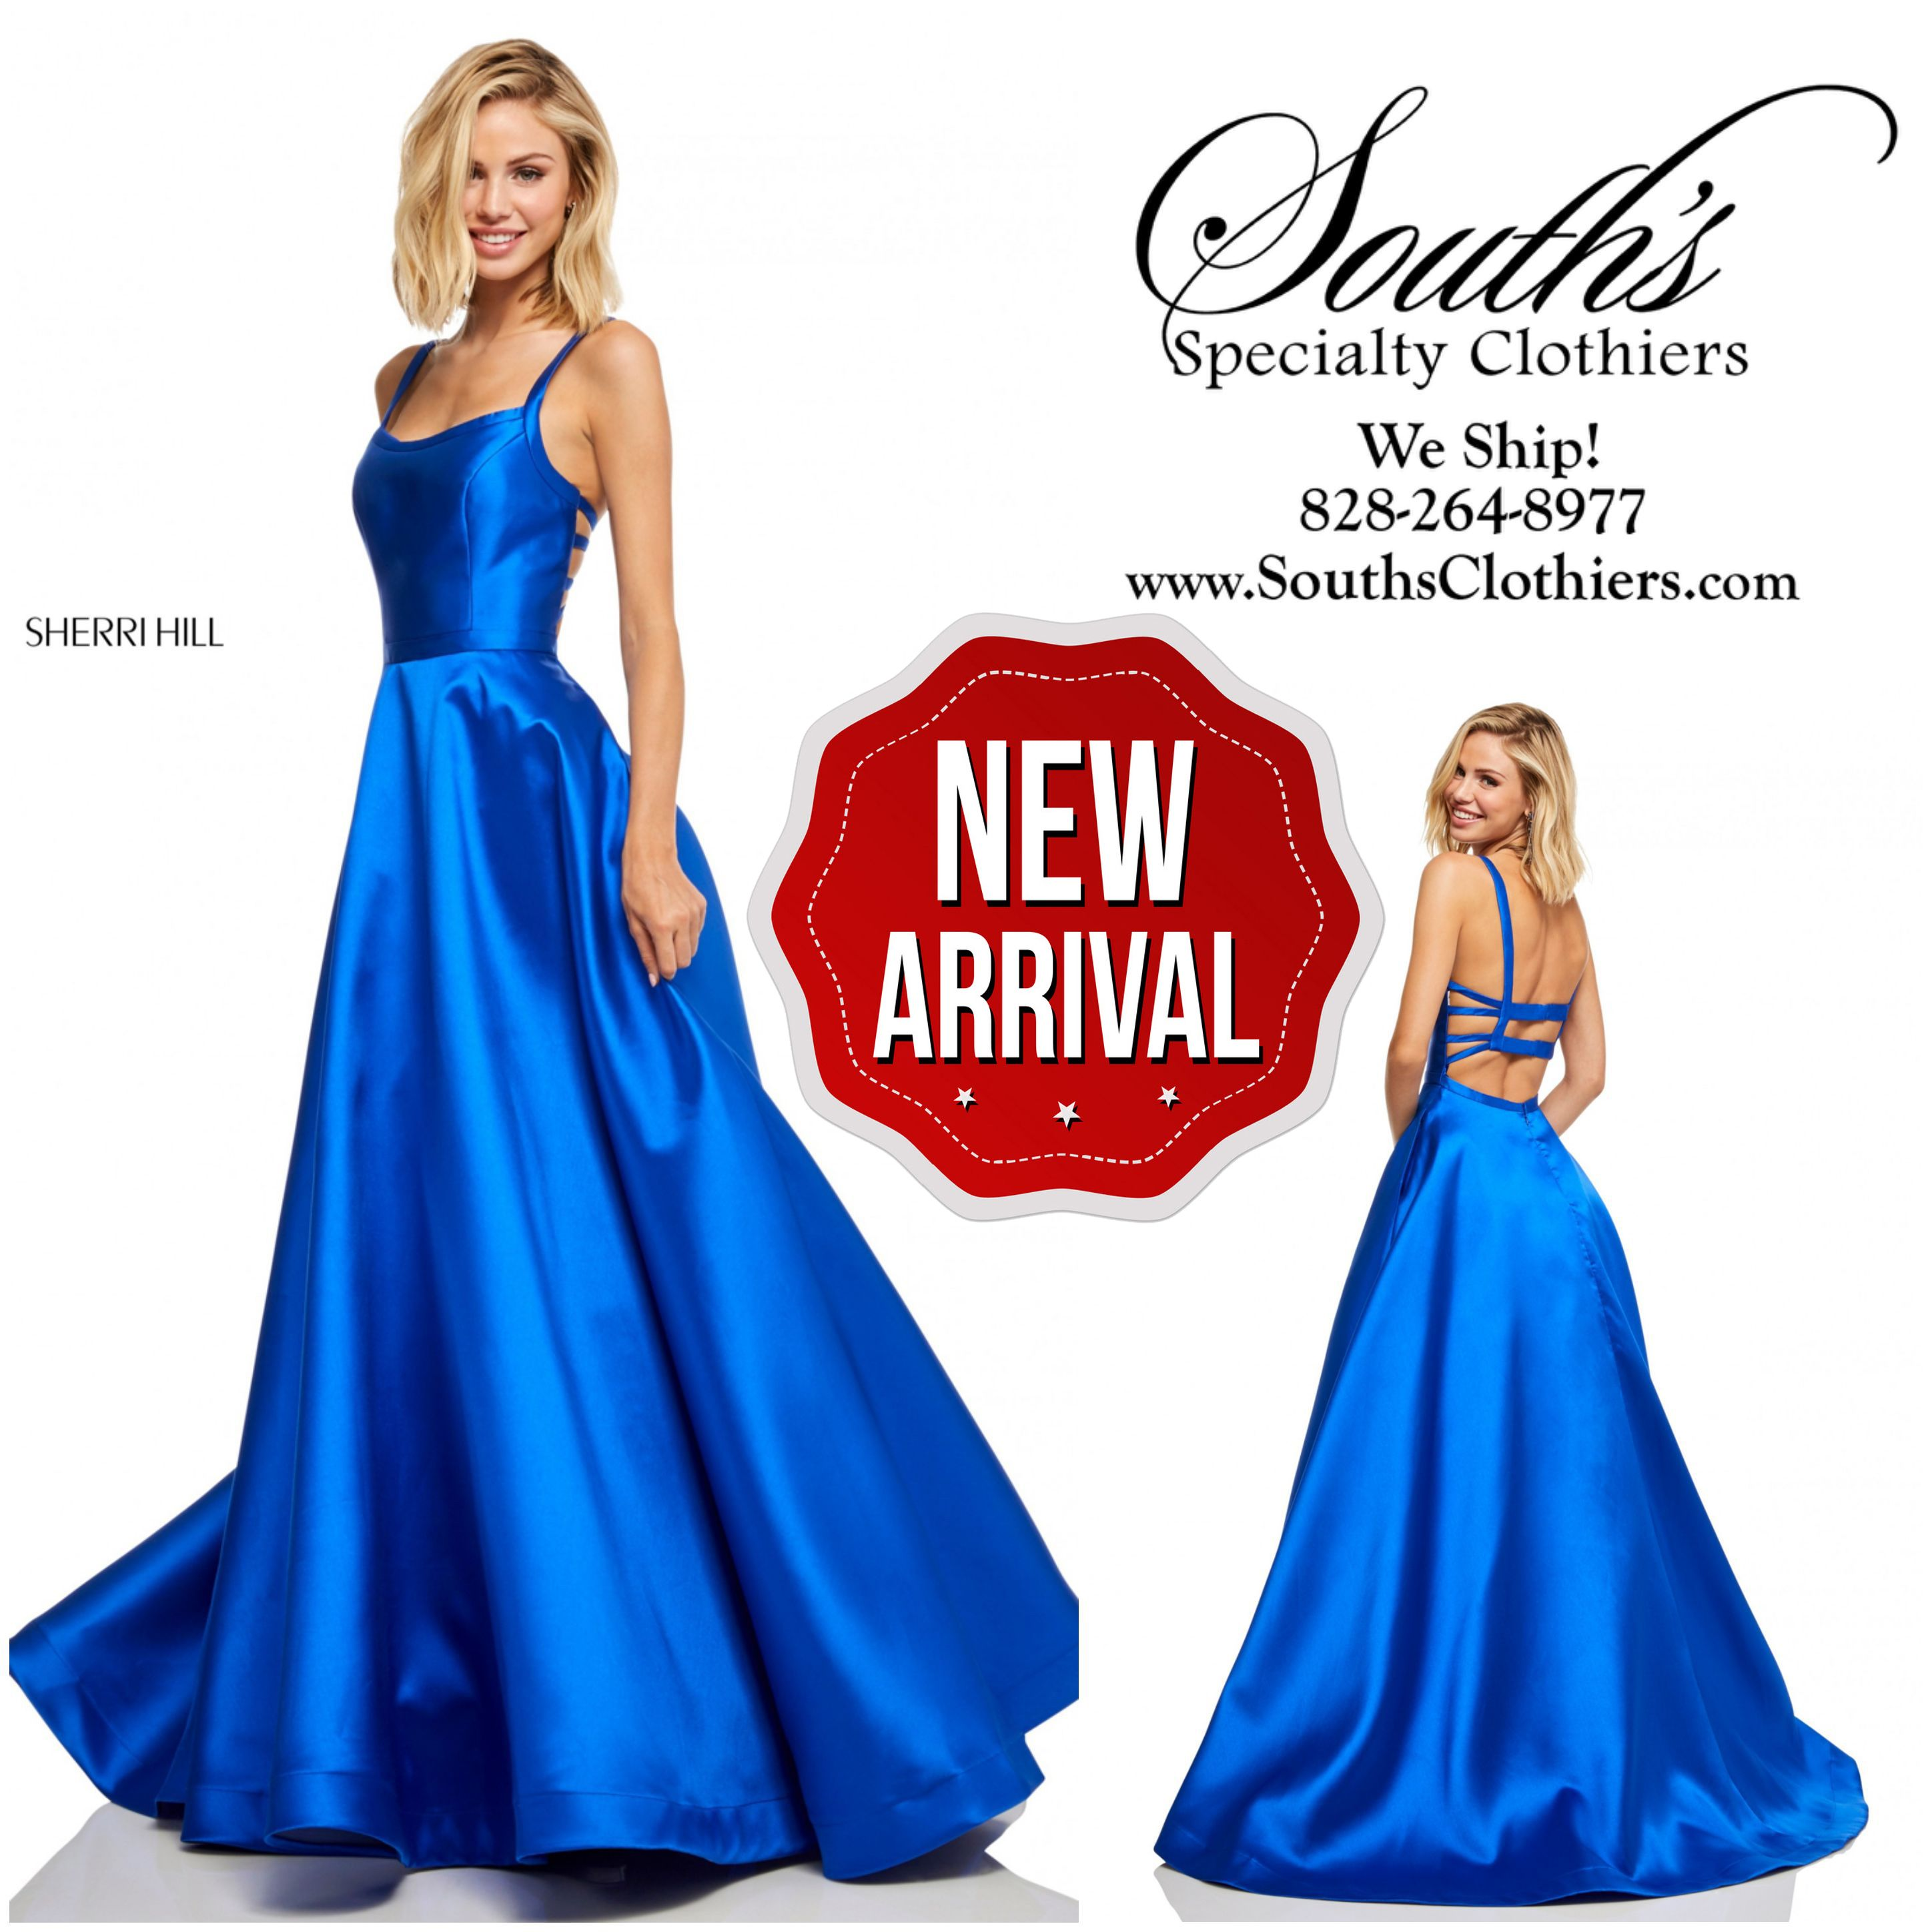 1fd363573bc IN-STOCK! Sherri Hill Style  52715  SouthsClothiers  BooneNC ...